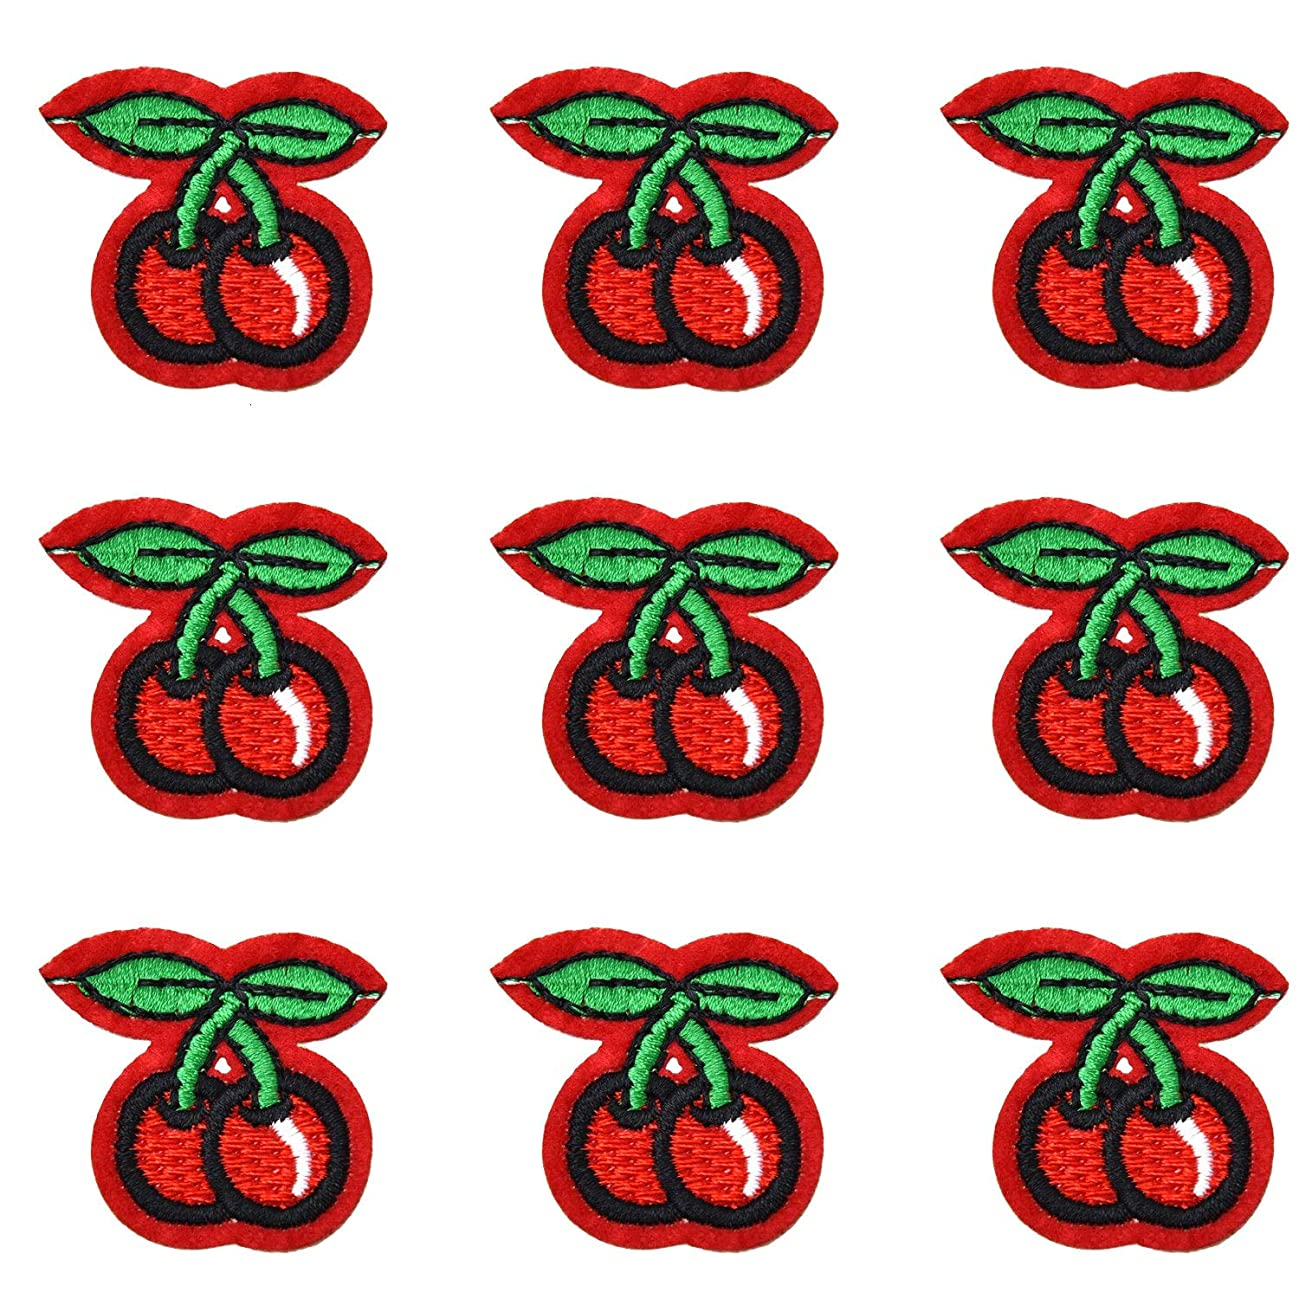 Monrocco 25Pcs Red 2 Cherries Sew Iron On Embroidered Patches Appliques for Clothing, Backpack, Caps, Repair The Hole Stick